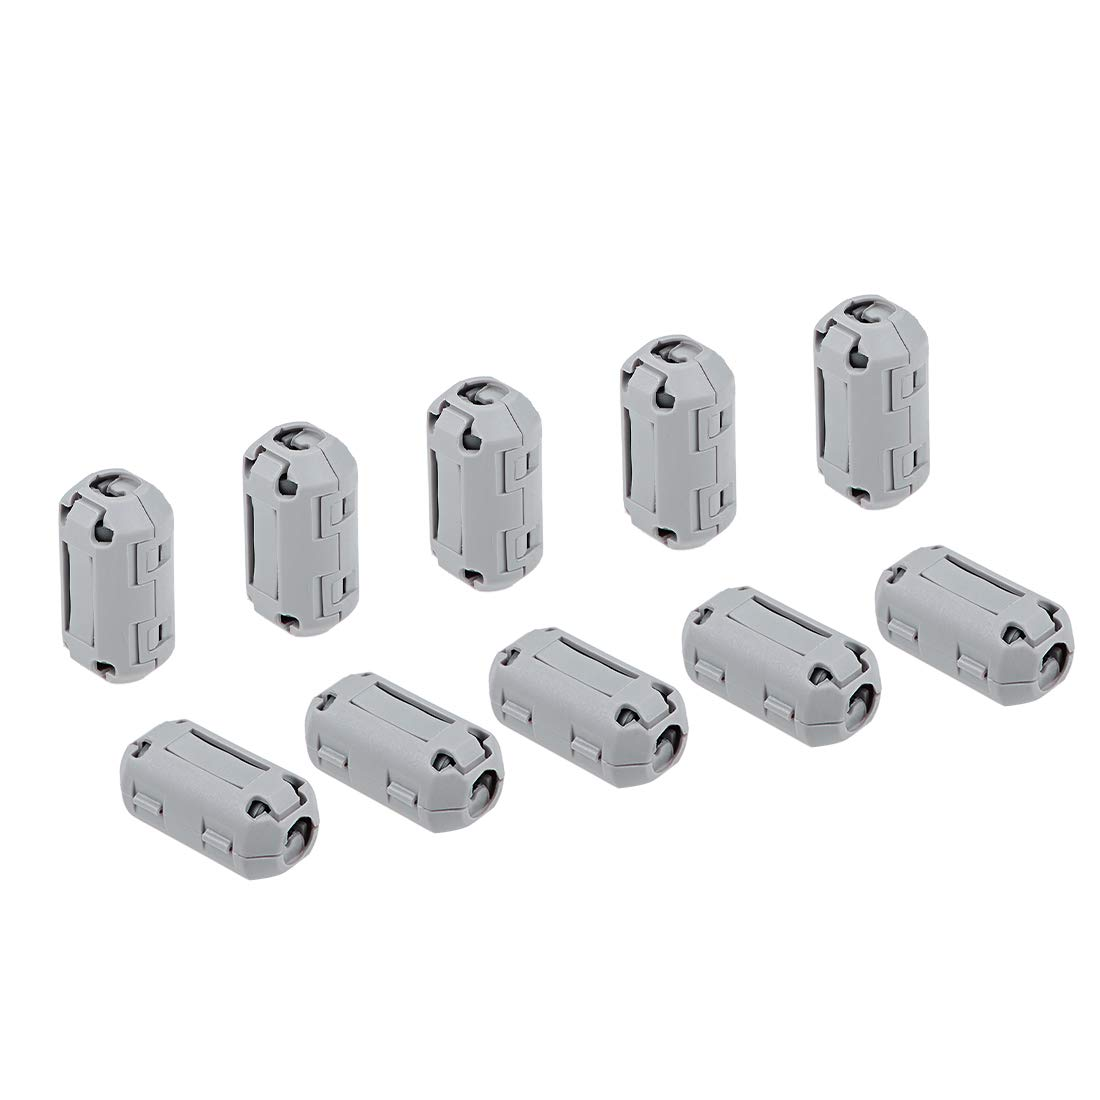 uxcell 7mm Ferrite Cores Ring Clip-On RFI EMI Noise Suppression Filter Cable Clip Grey 10pcs